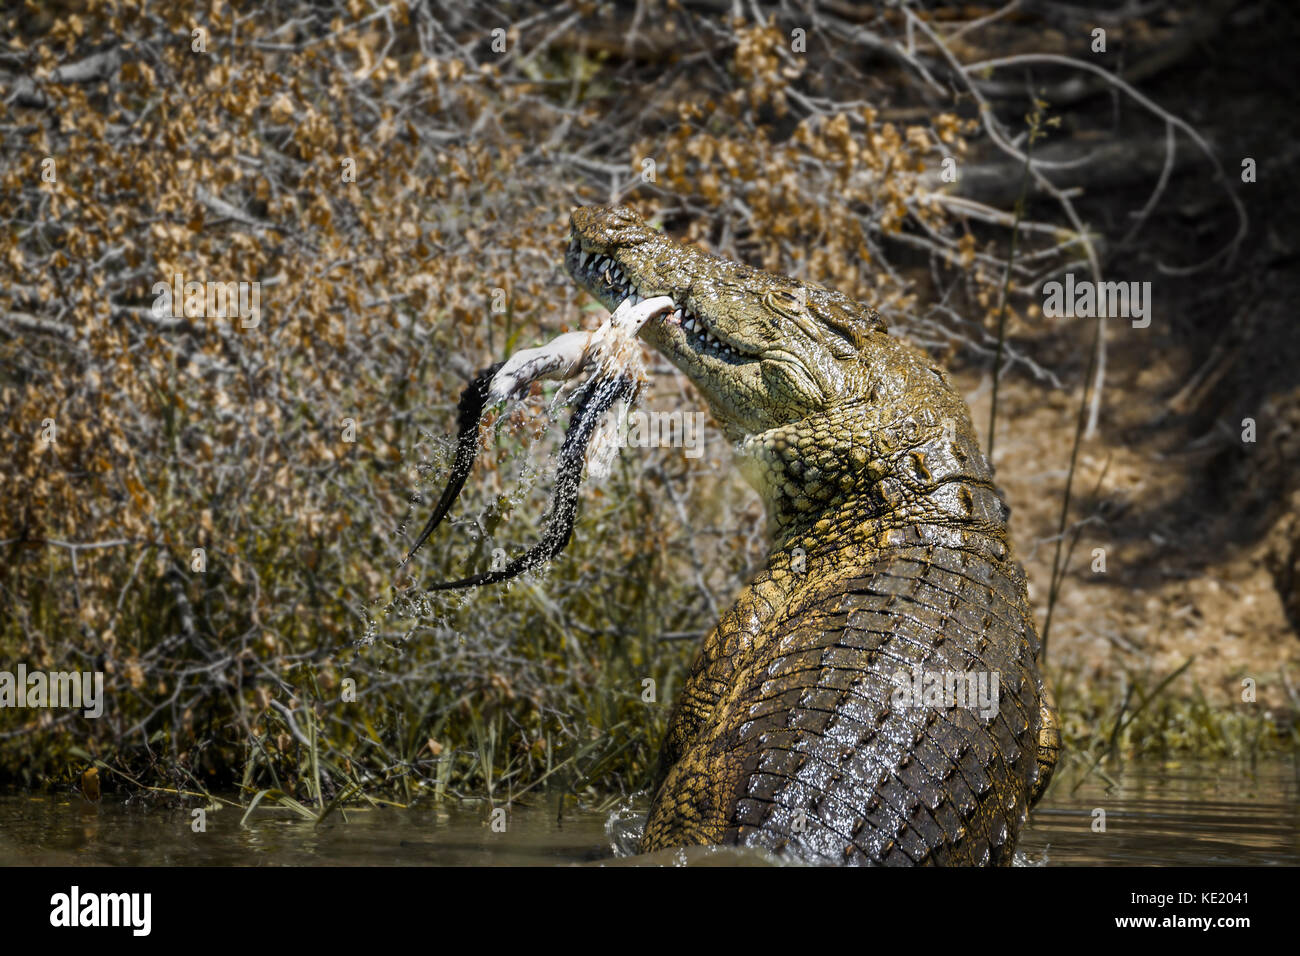 Nile crocodile in Kruger national park, South Africa ; Specie Crocodylus niloticus family of Crocodylidae Stock Photo